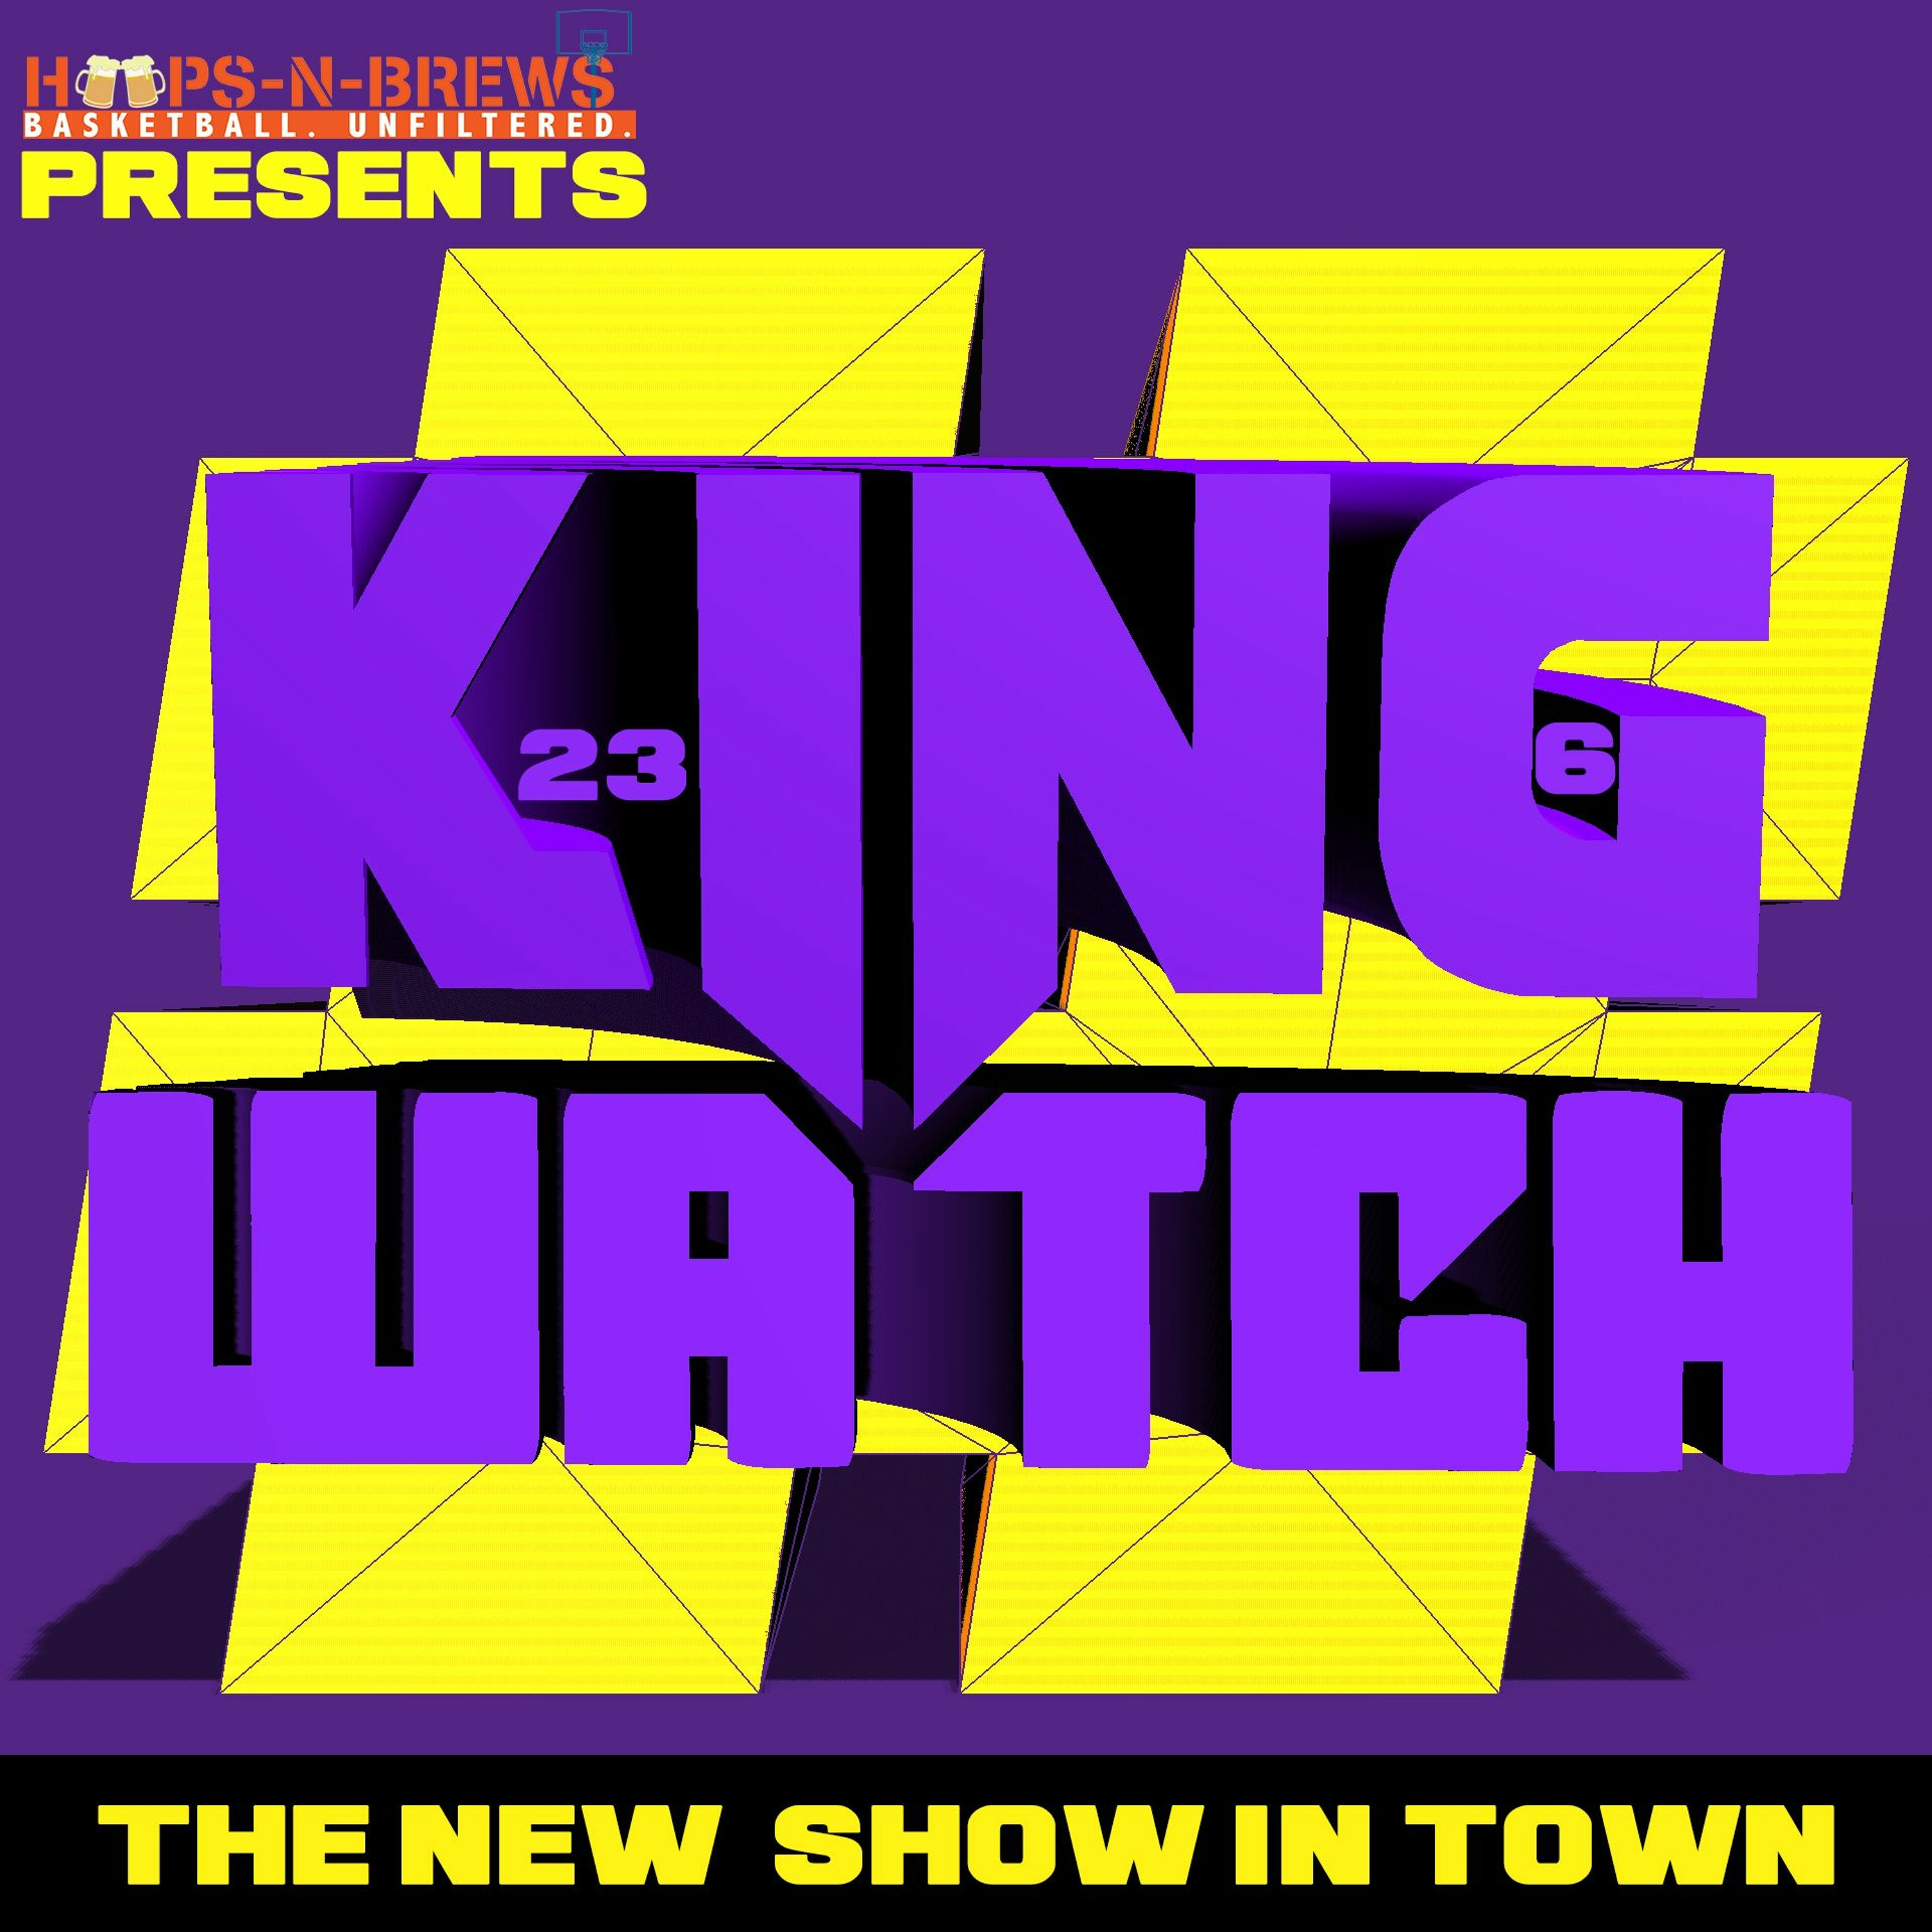 #KingWatch: Lakers Vs Warriors Postgame 3.15.21 Hosted By Daniel Beltz